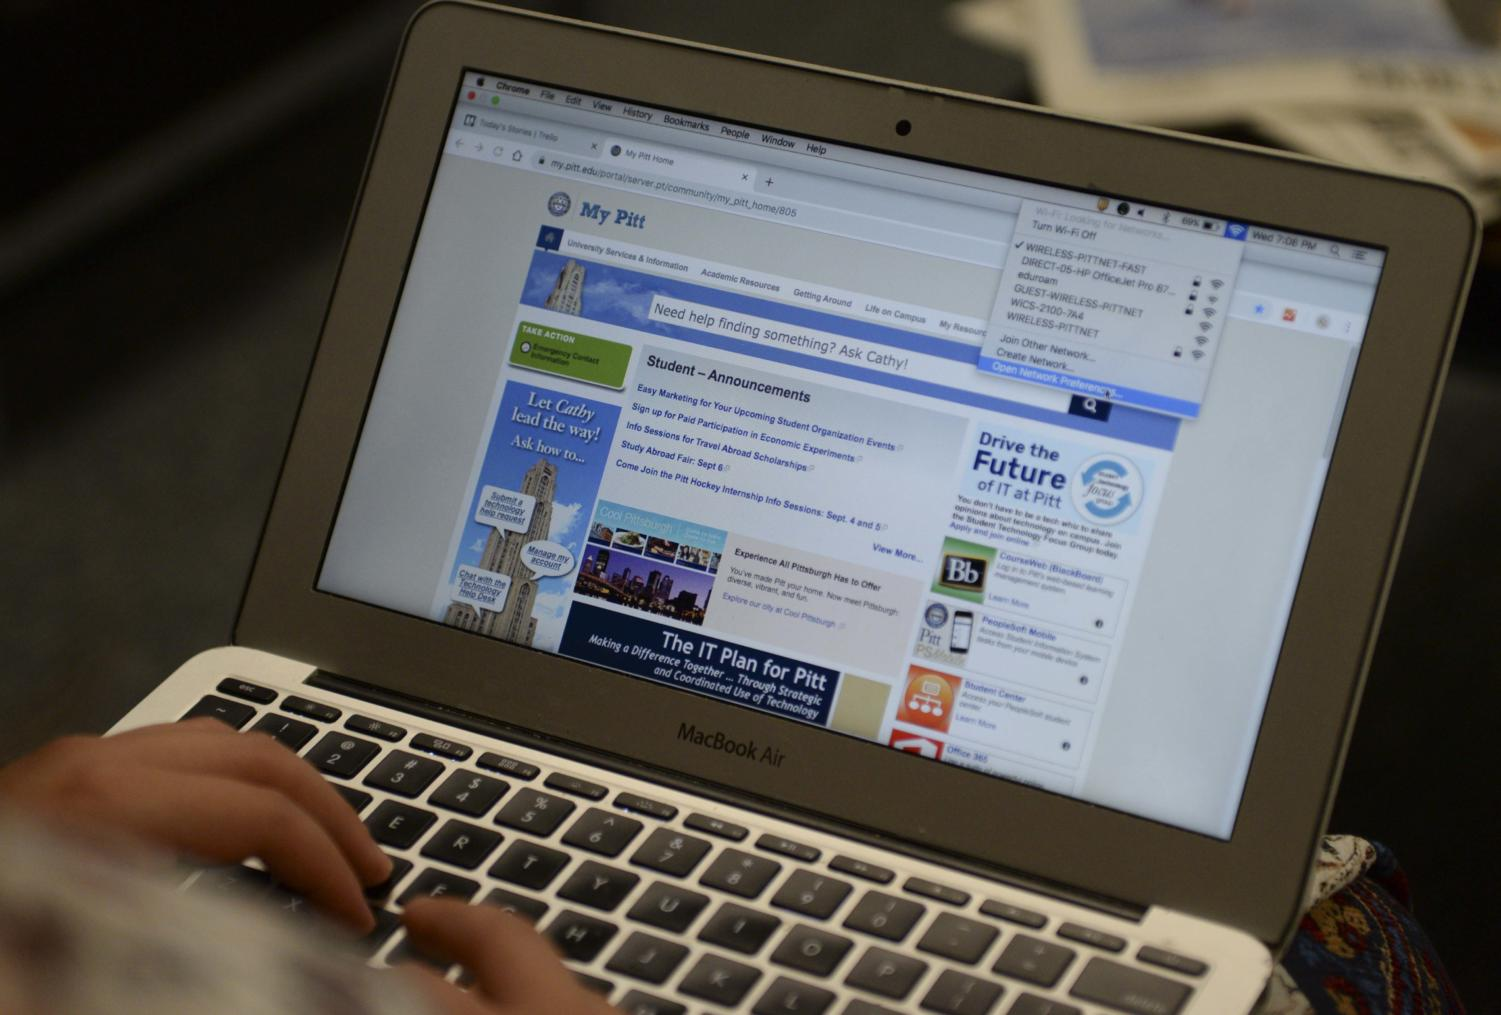 Pitt recently outsourced Wi-Fi services for students living in residence halls.